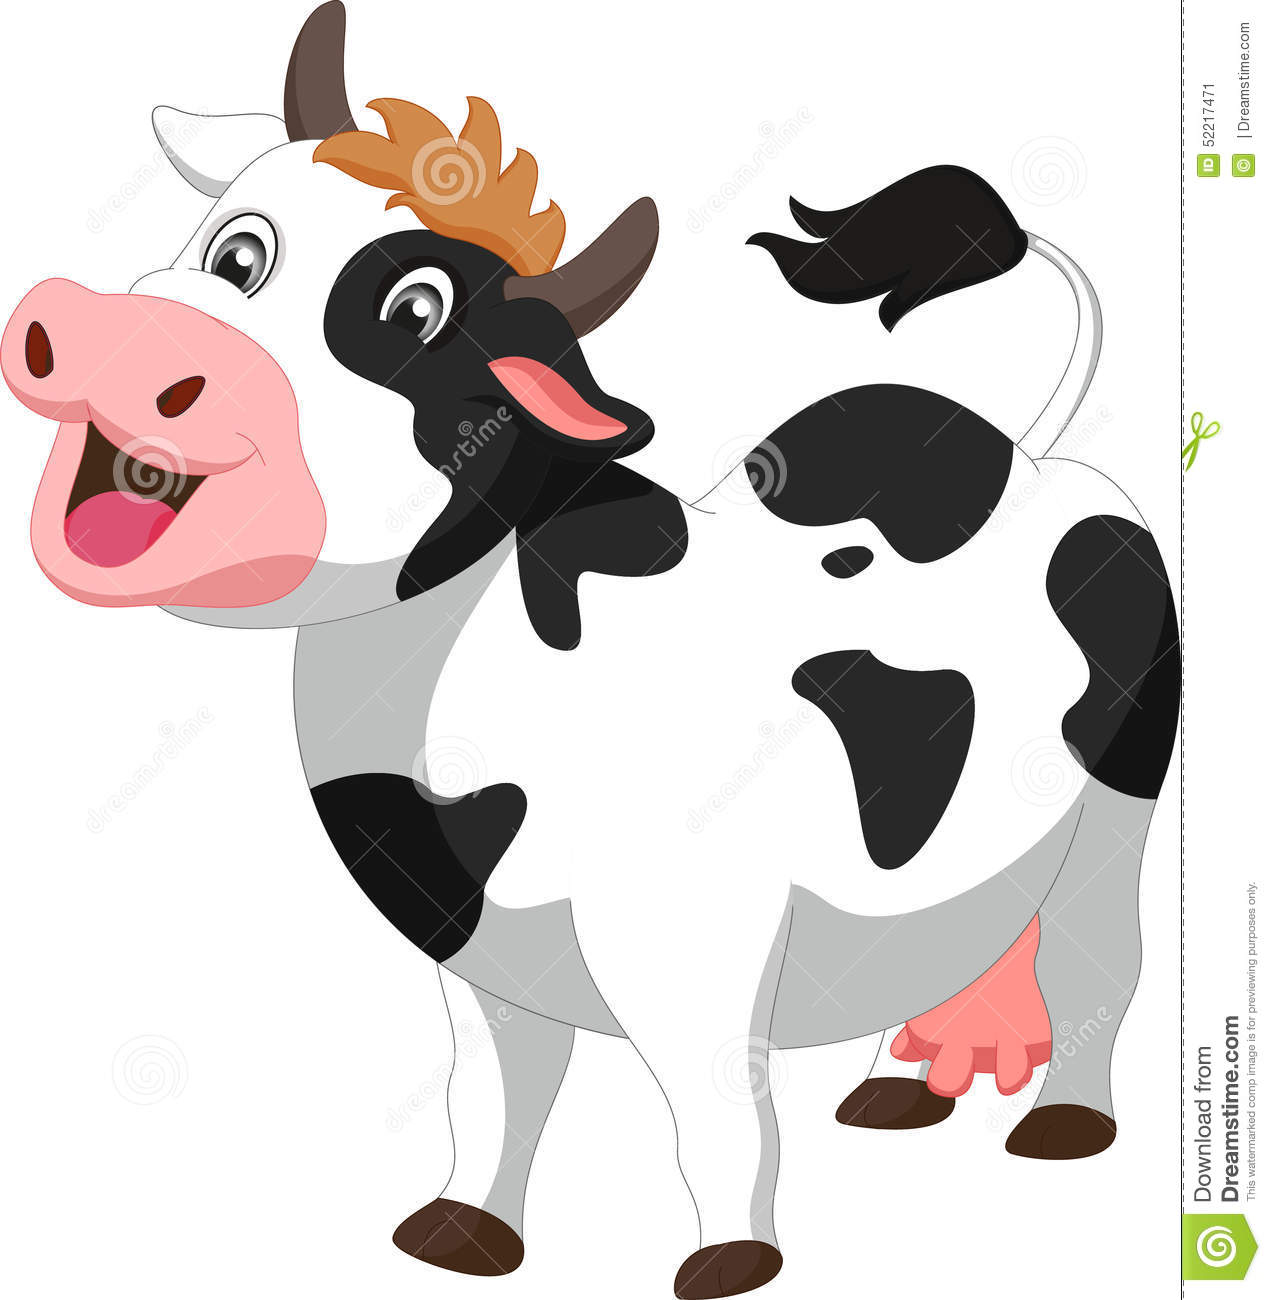 Illustration of cute cow cartoon isolated on white.